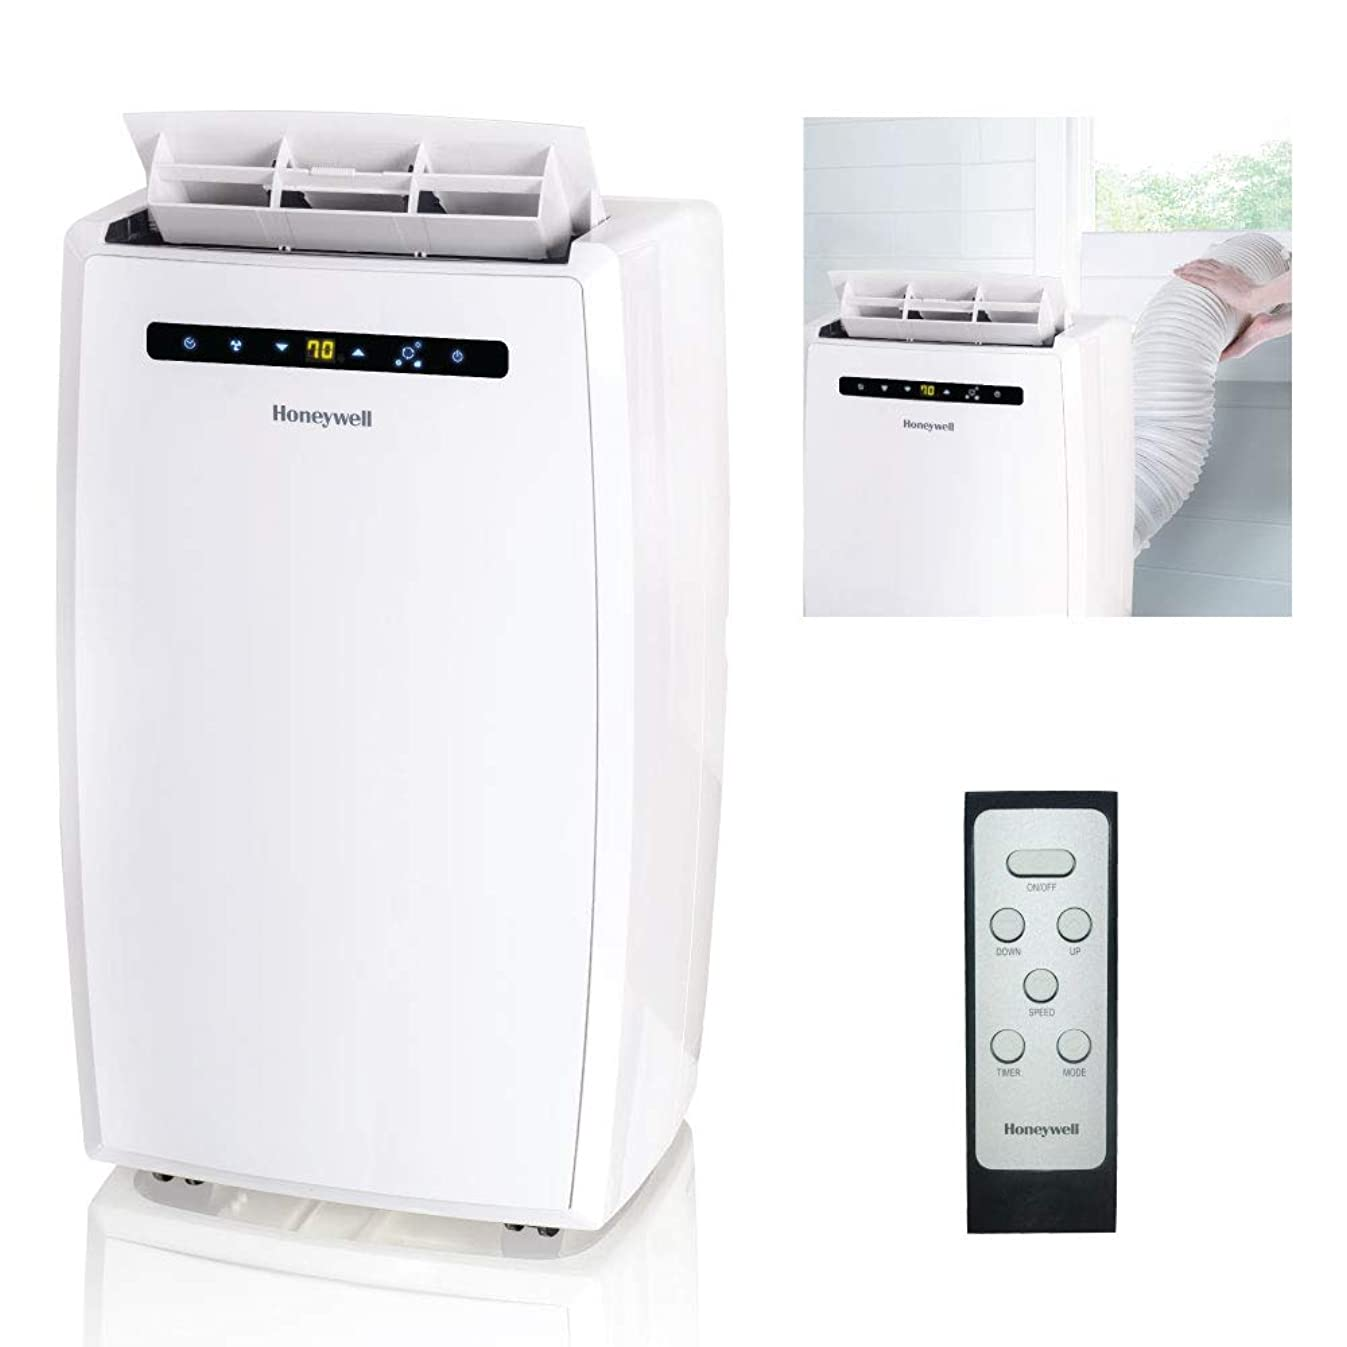 Honeywell MN10CESWW 10000 BTU Portable Air Conditioner, Dehumidifier & Fan for Rooms Up To 350-450 Sq. Ft. with Thermal Overload Protection, Washable Air Filter & Remote Control